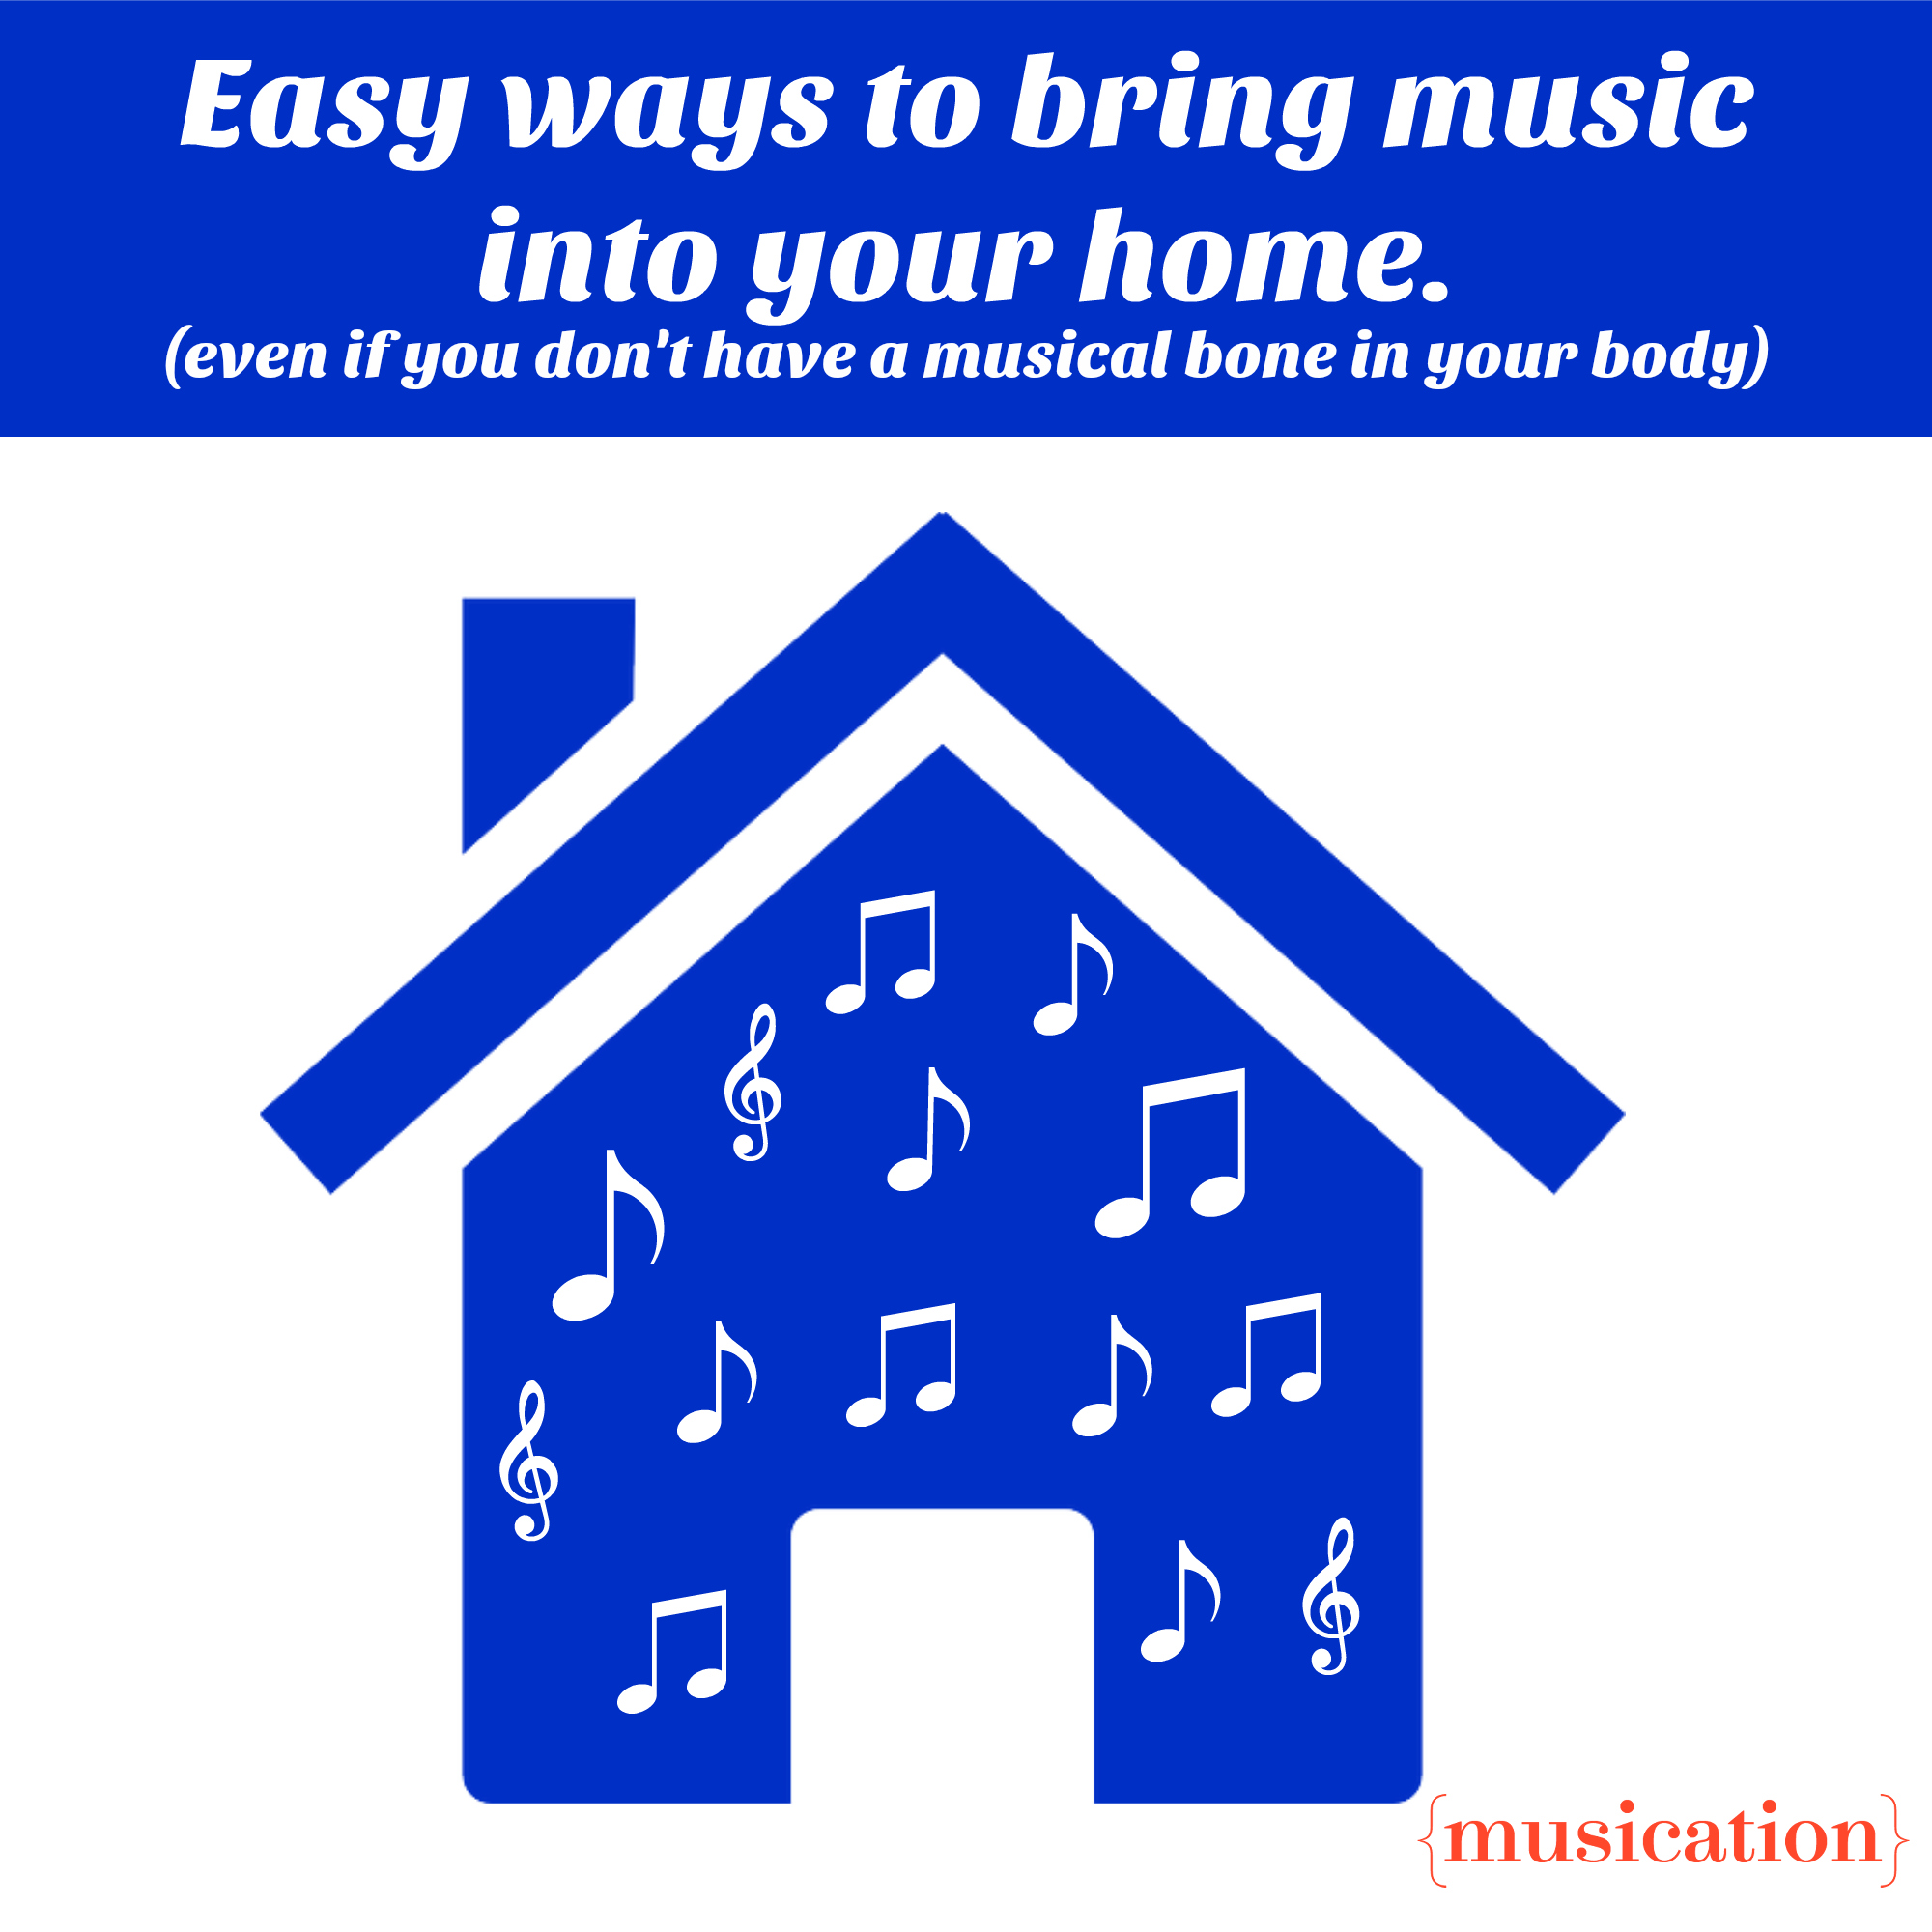 Bringing Music Into Your Home